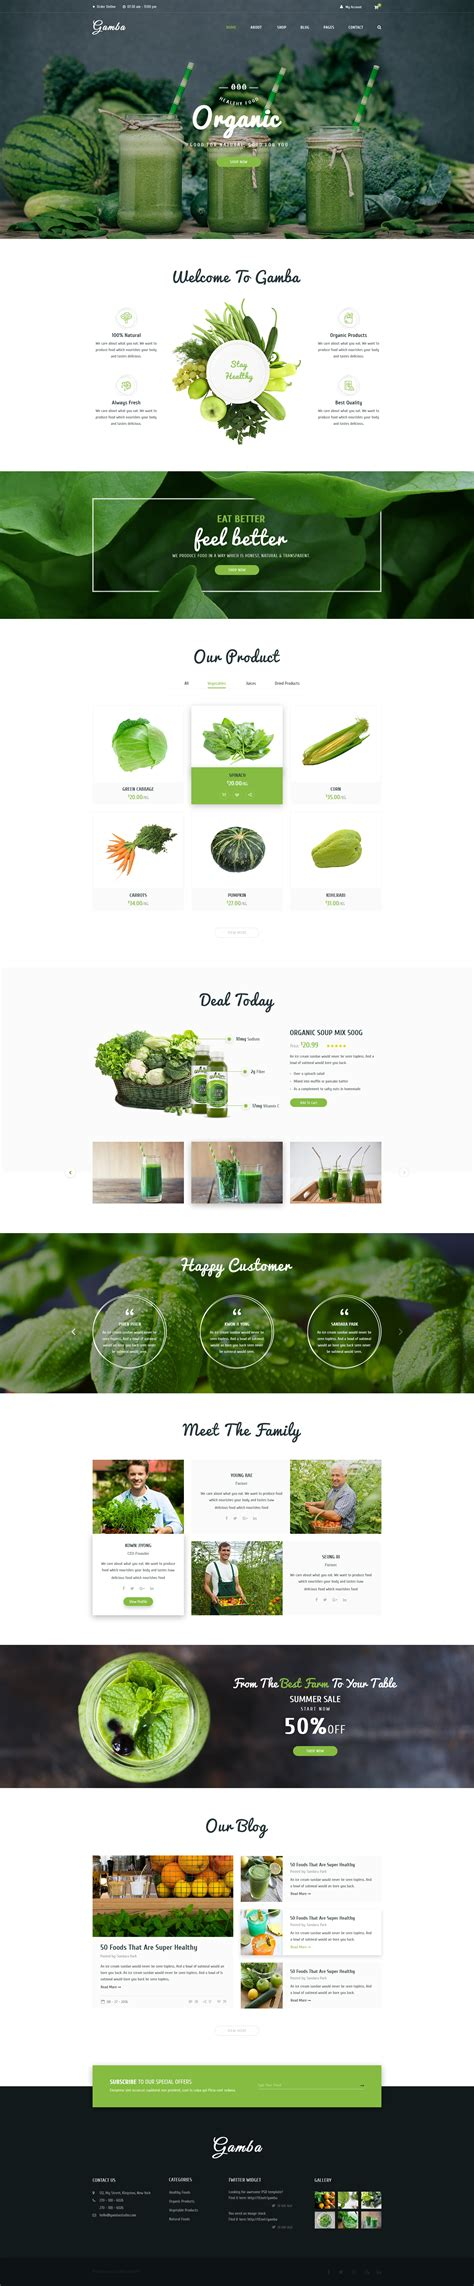 pinterest layout psd gamba organic psd template by gambathemes themeforest